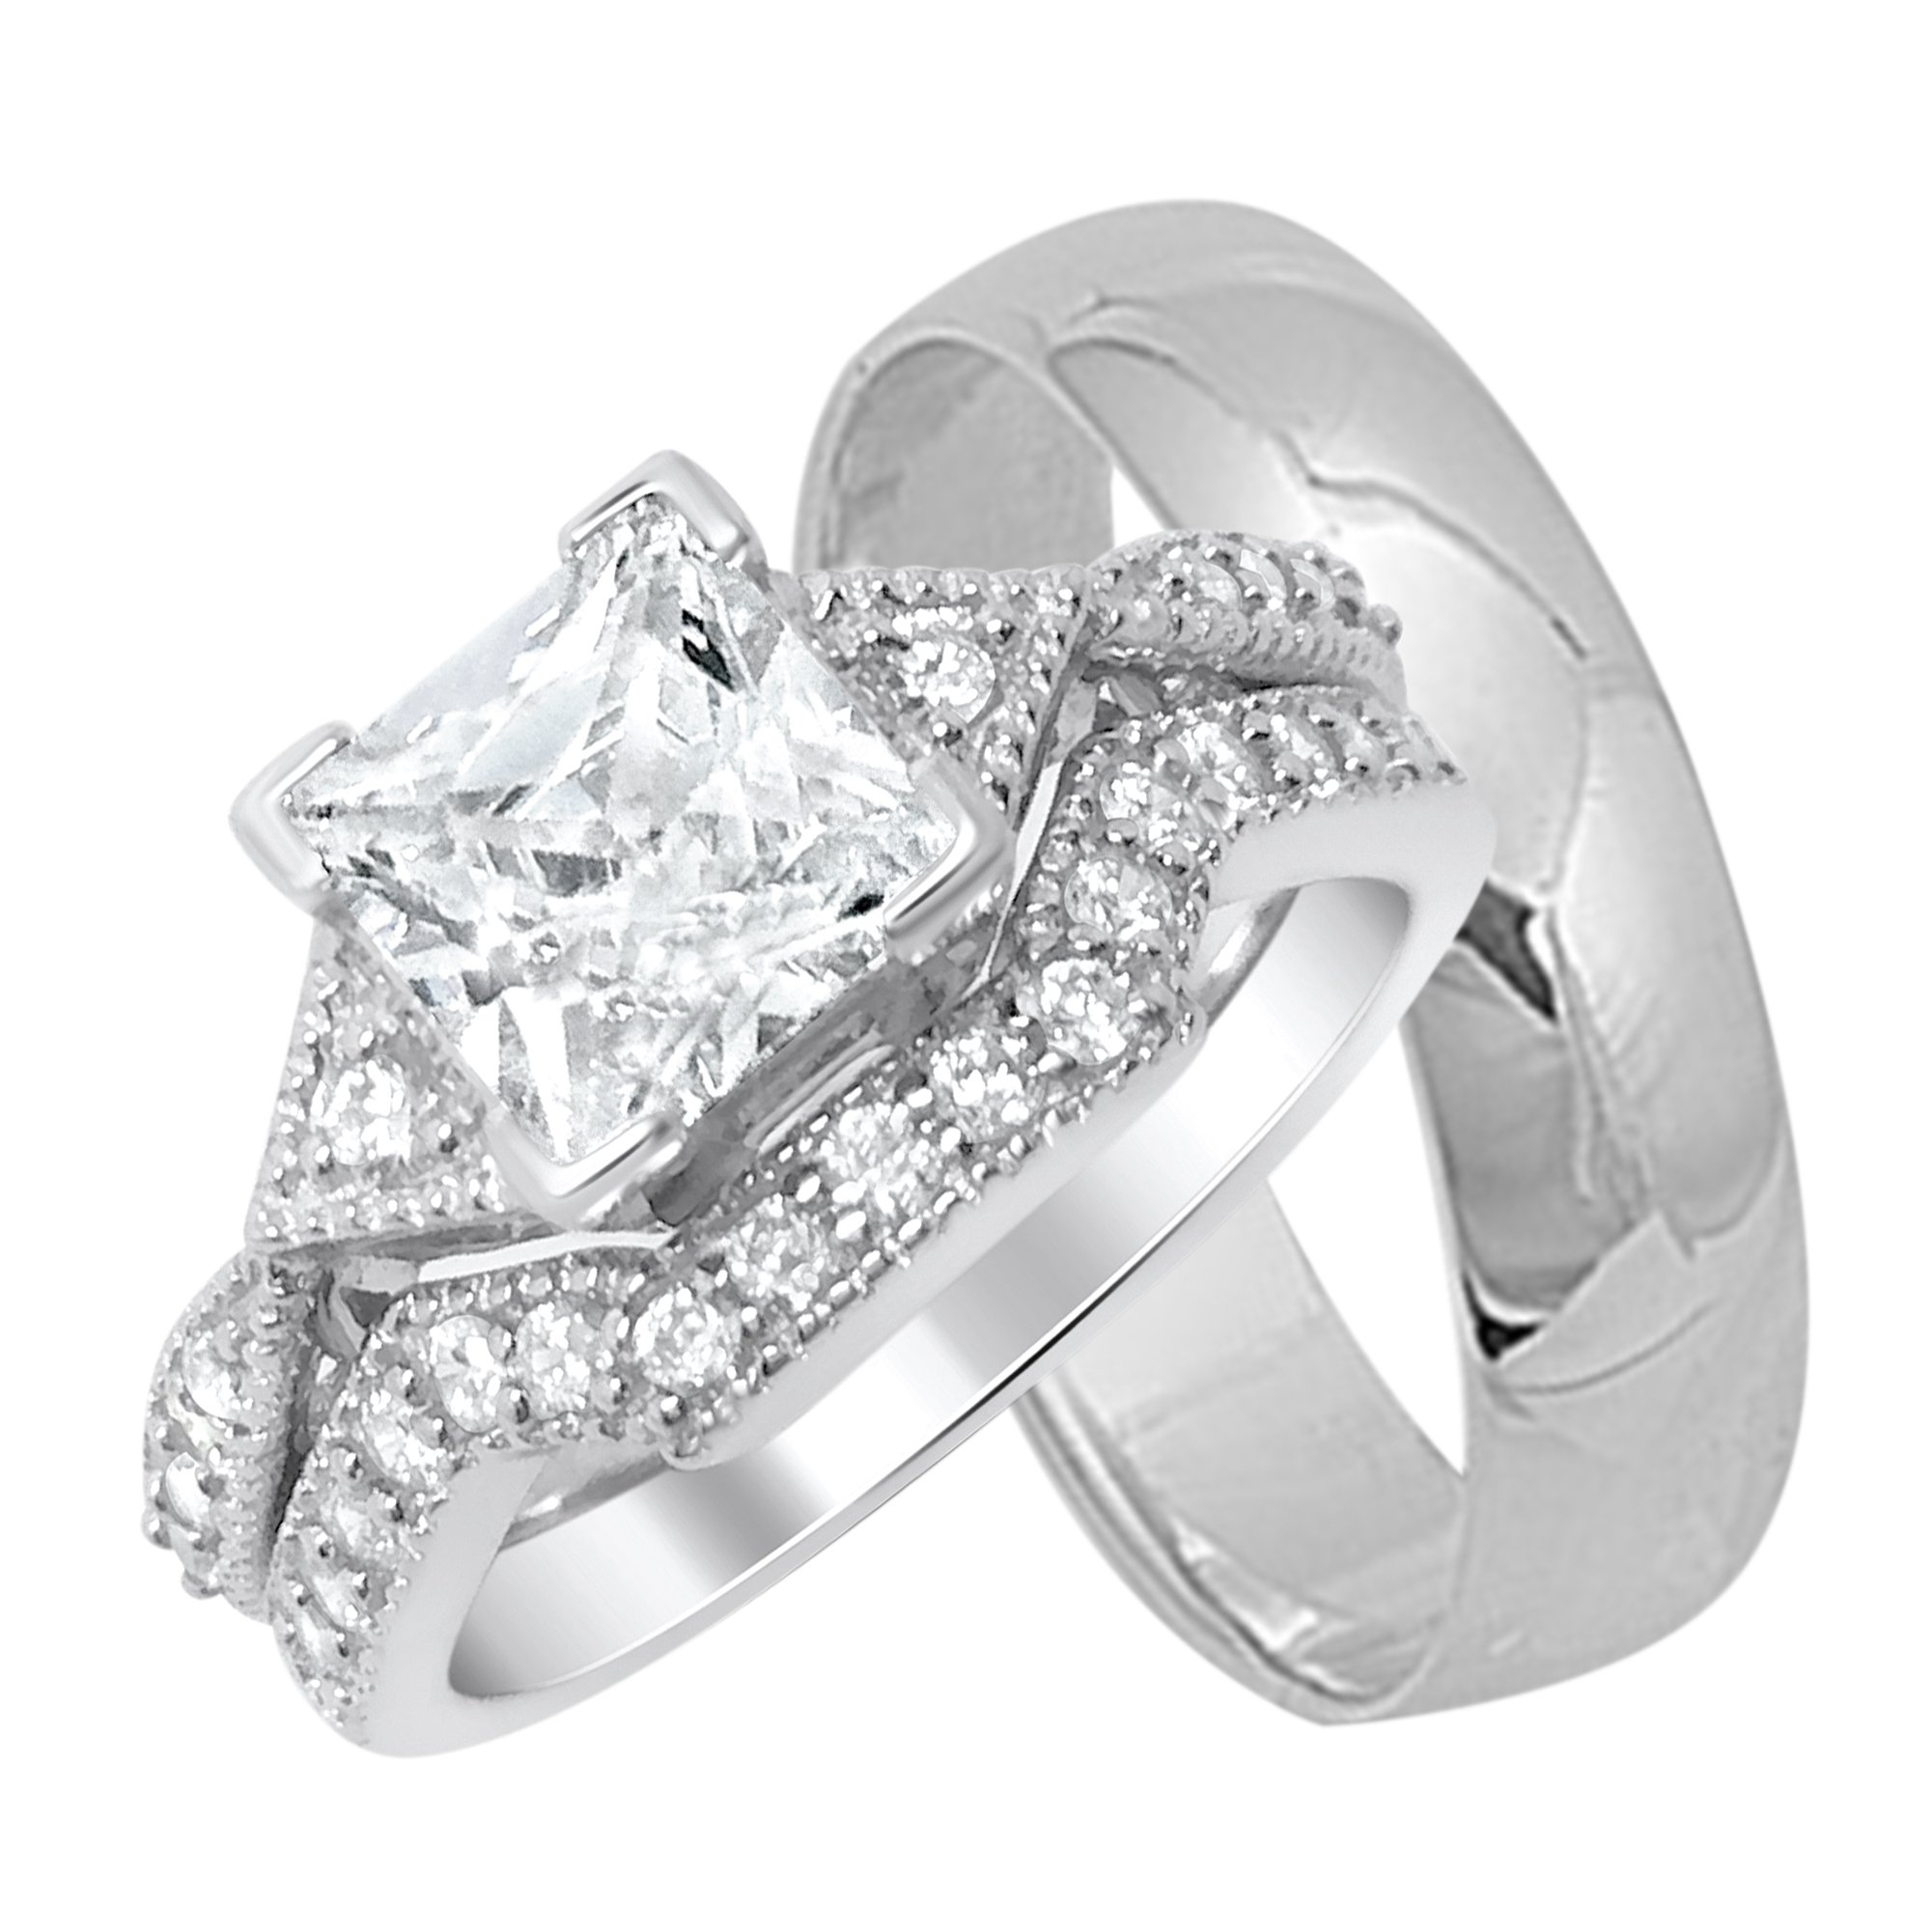 His and Hers Silver Wedding Rings Set Matching Bands For Him Her (6/14)